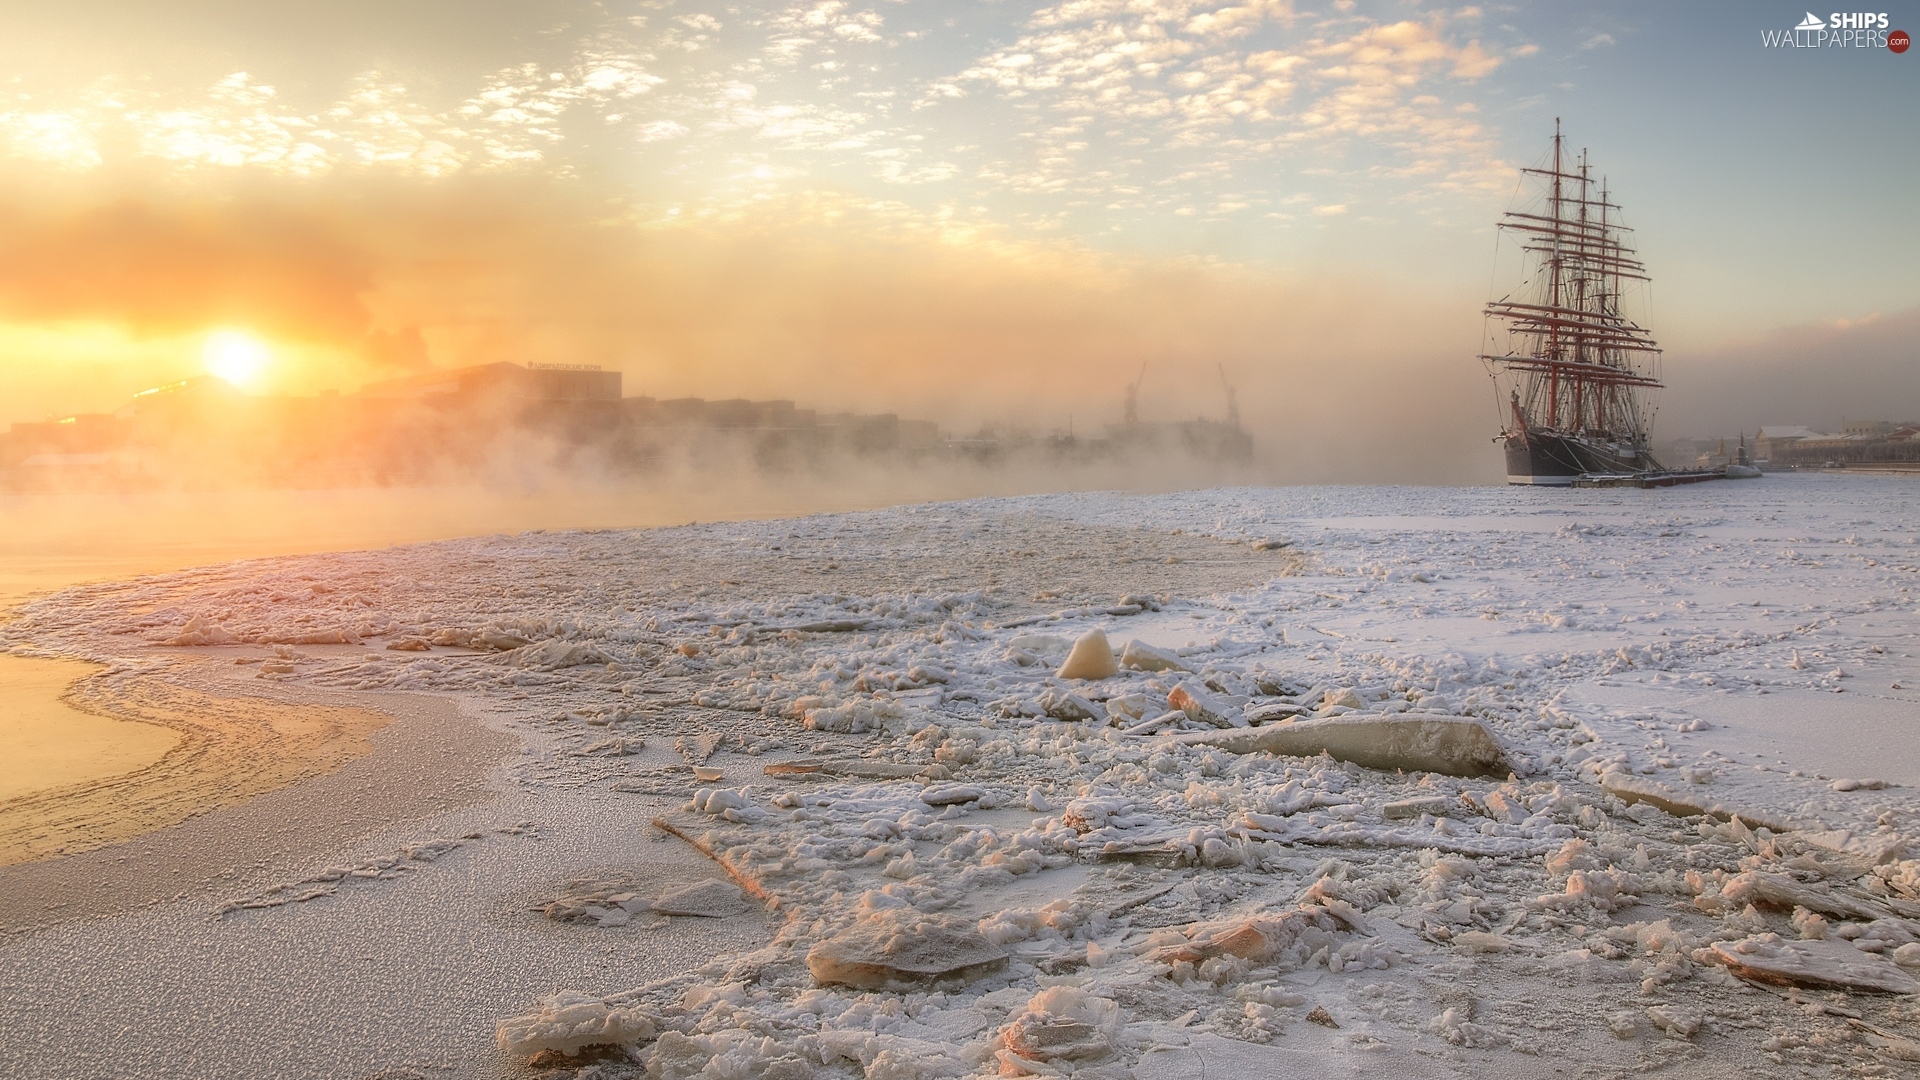 Sunrise, sailing vessel, River, snow, winter